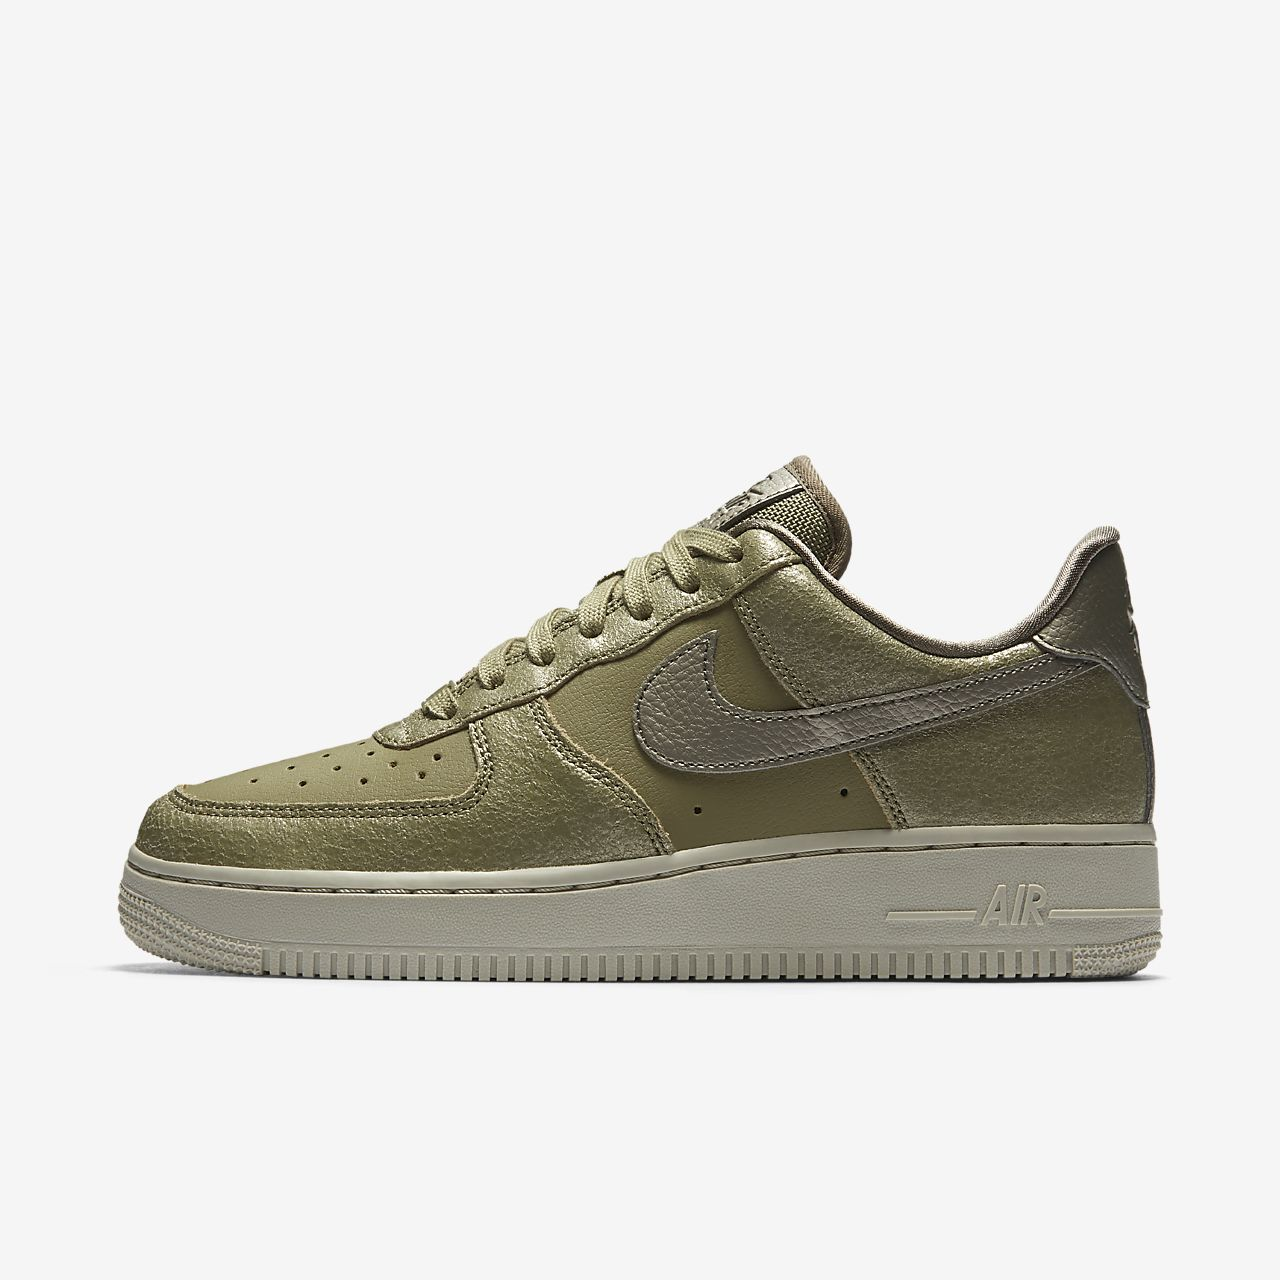 low priced f1e12 f8de4 Nike Air Force 1 07 Low Premium Womens Shoe Nike Air Force 1 Mid 07 Legion  Green ...